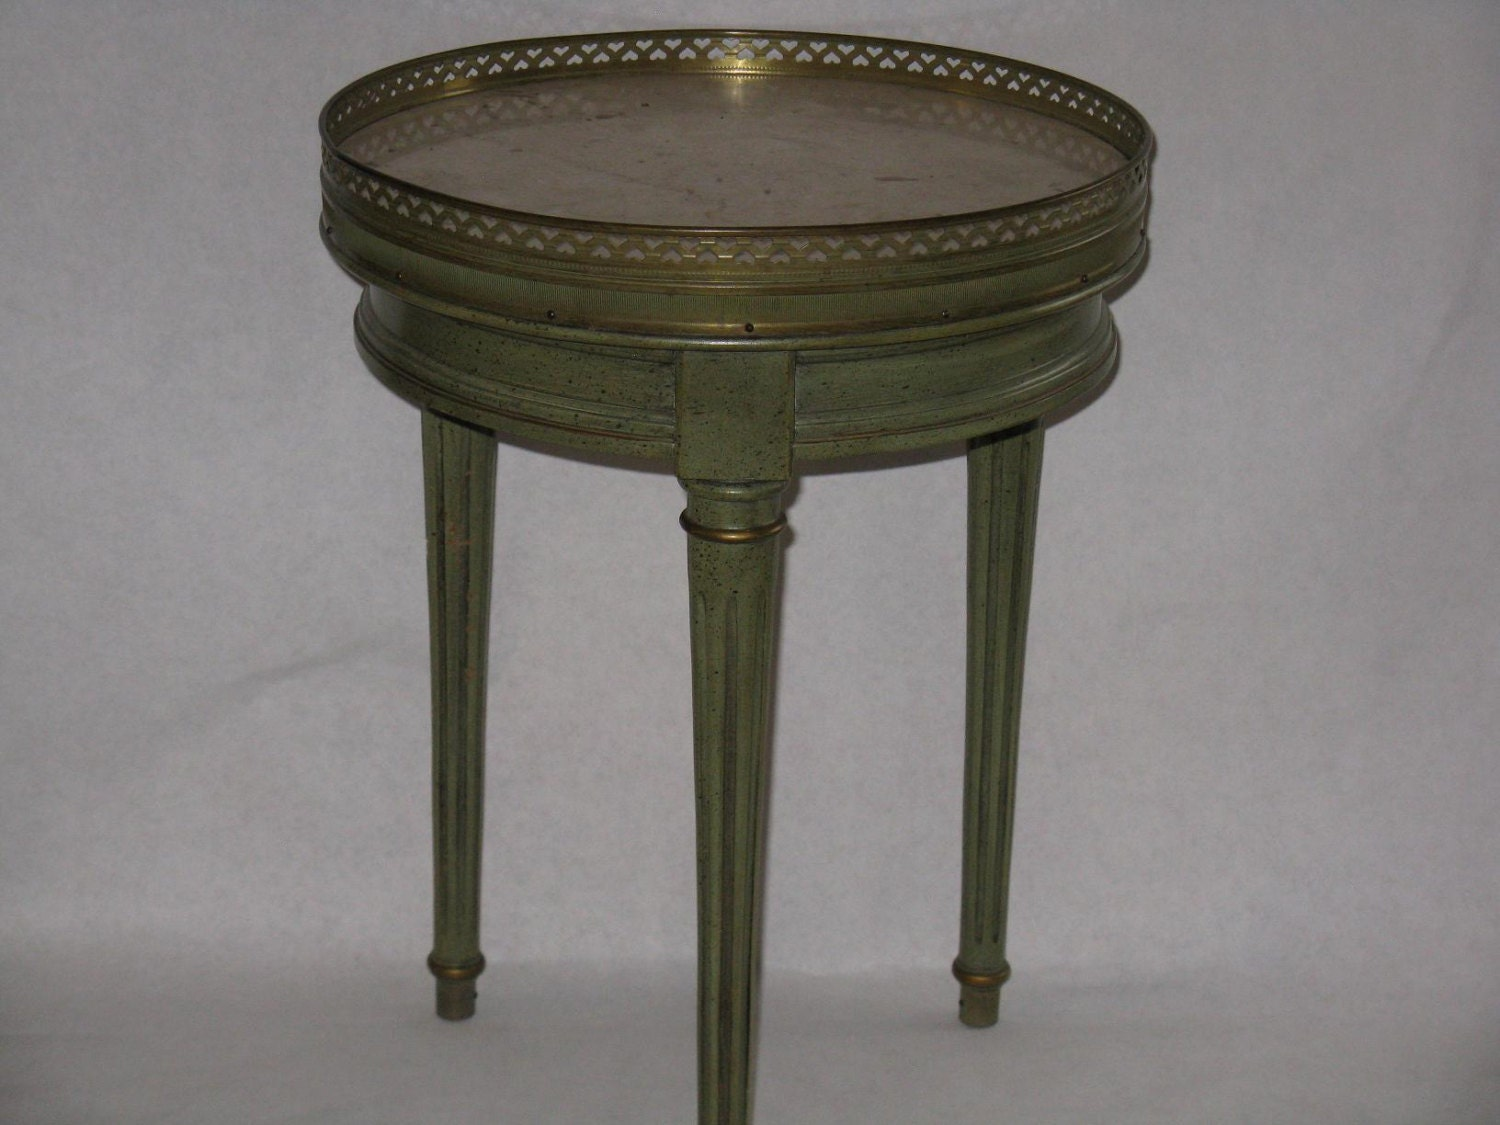 Vintage Brandt Accent Table Green Wood Marble Top Brass Accent